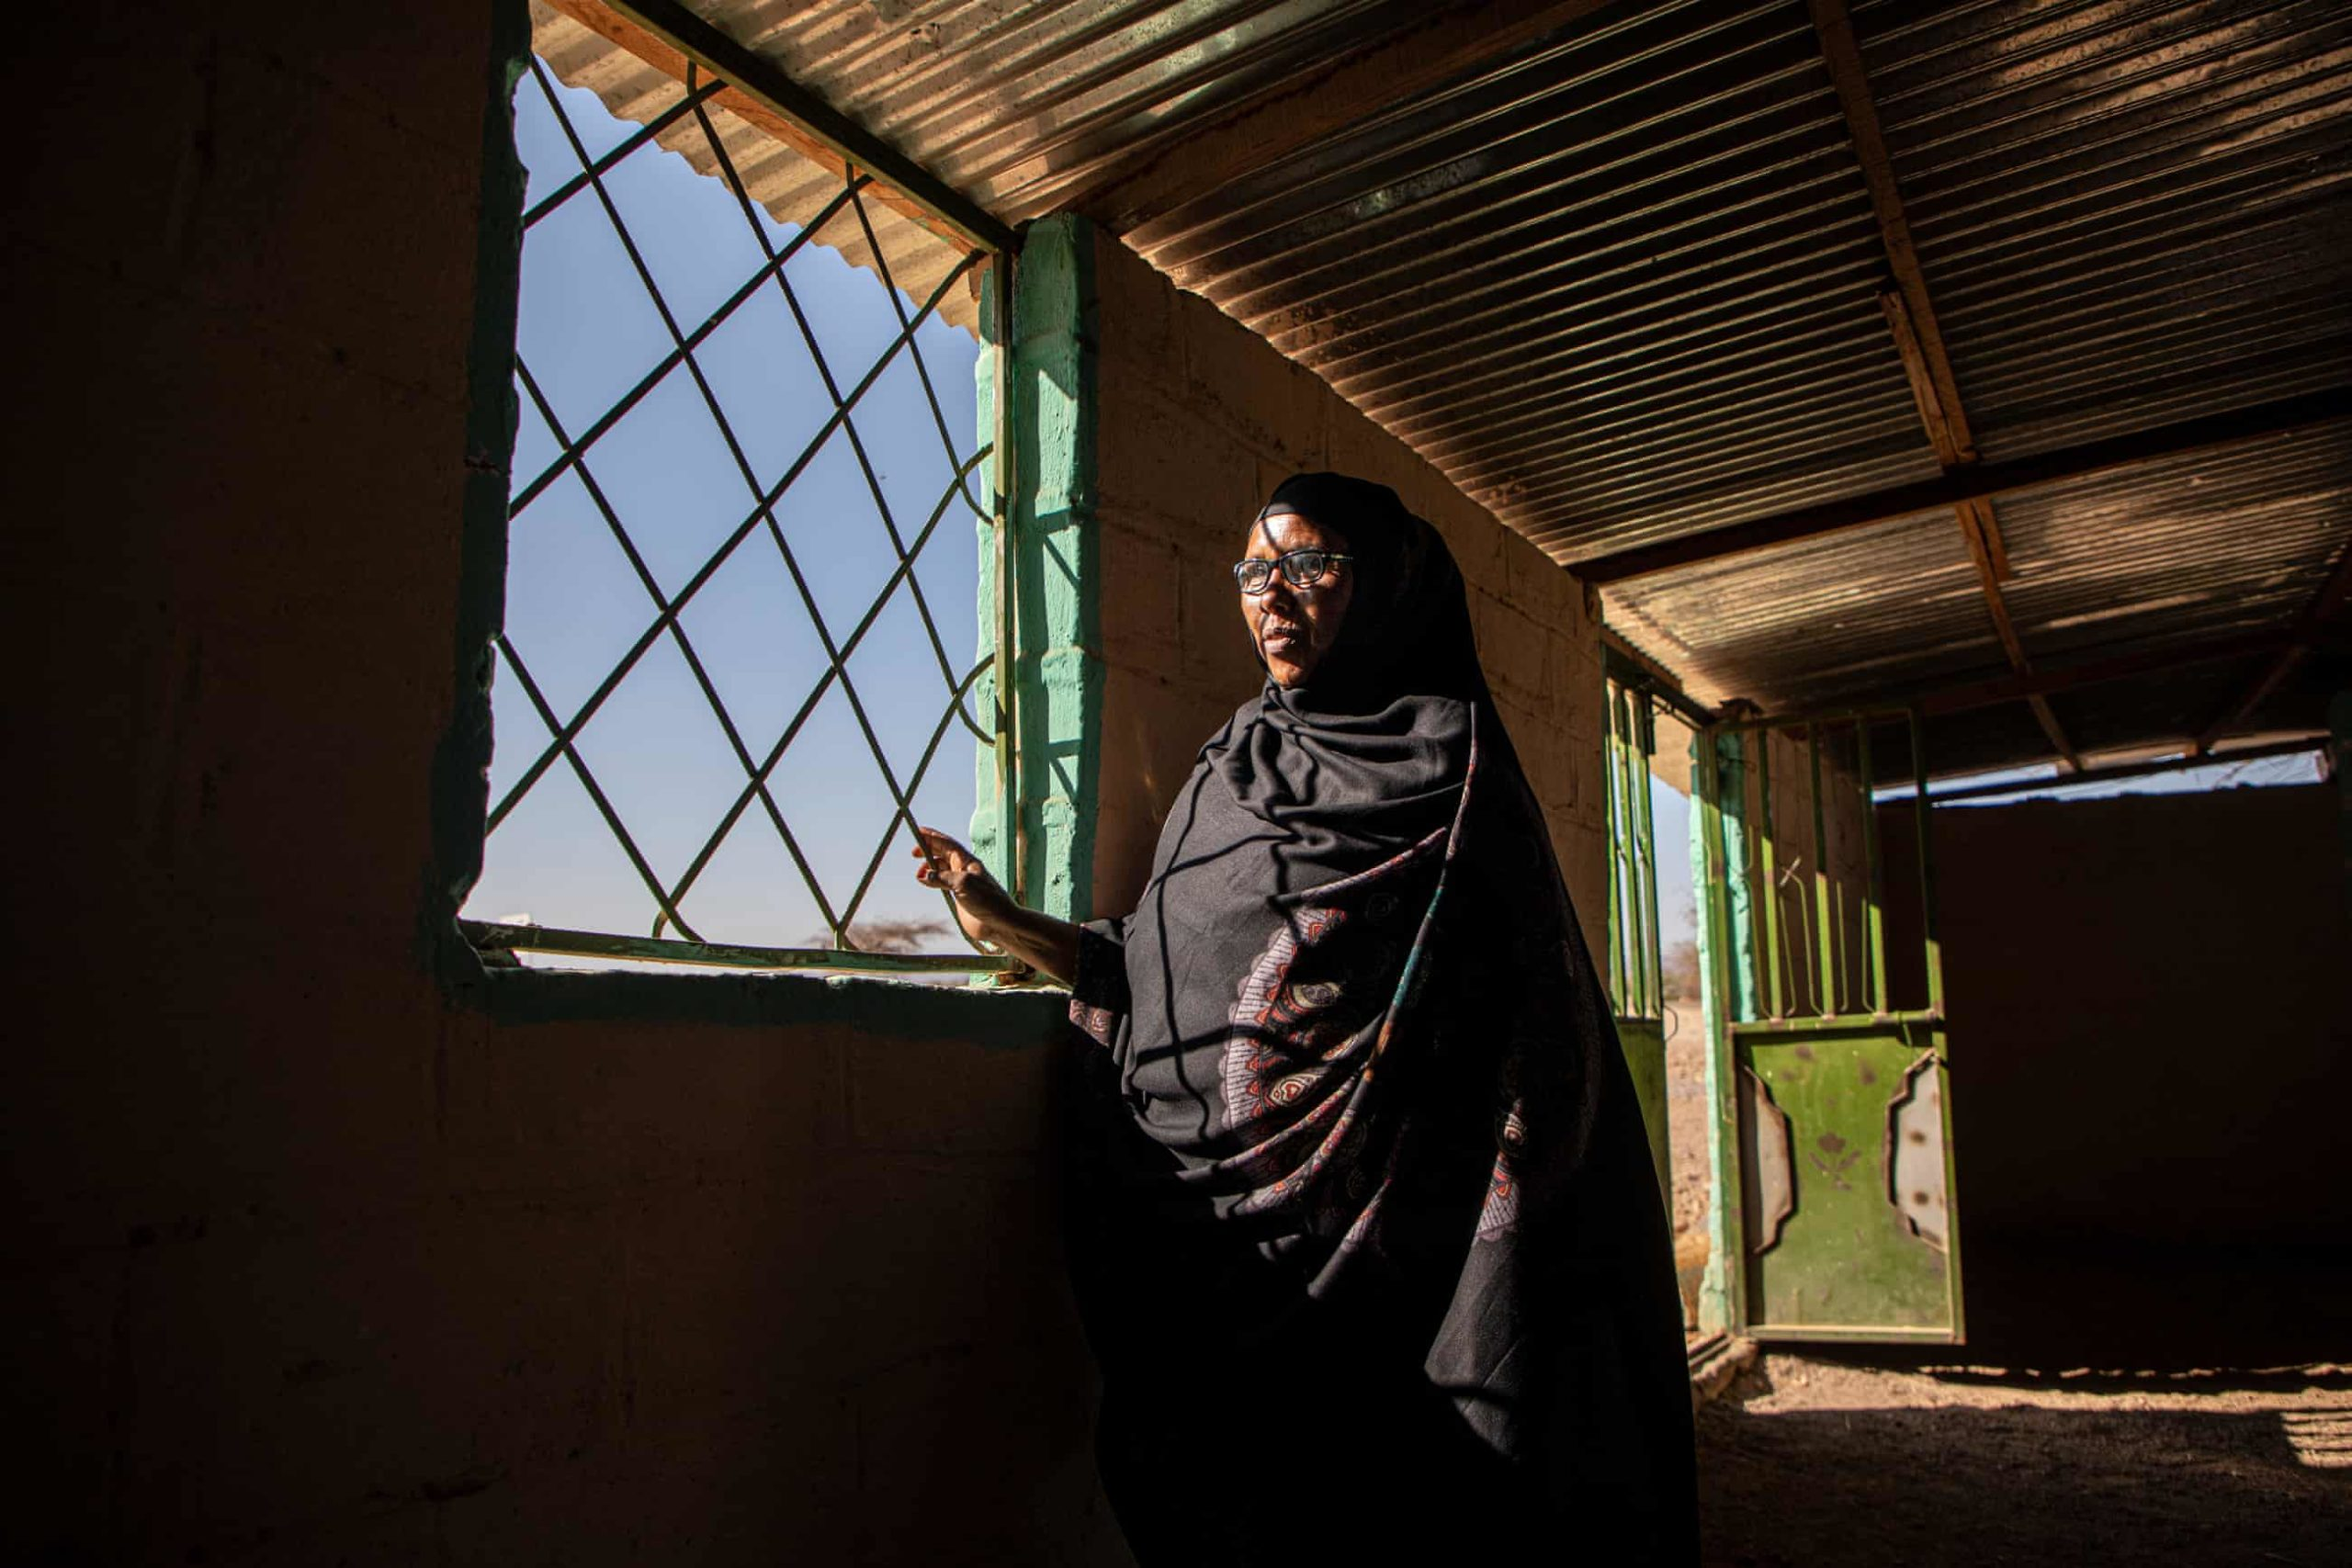 'Most of the men are your enemies': one woman's crusade in Somalia – The Guardian (image)